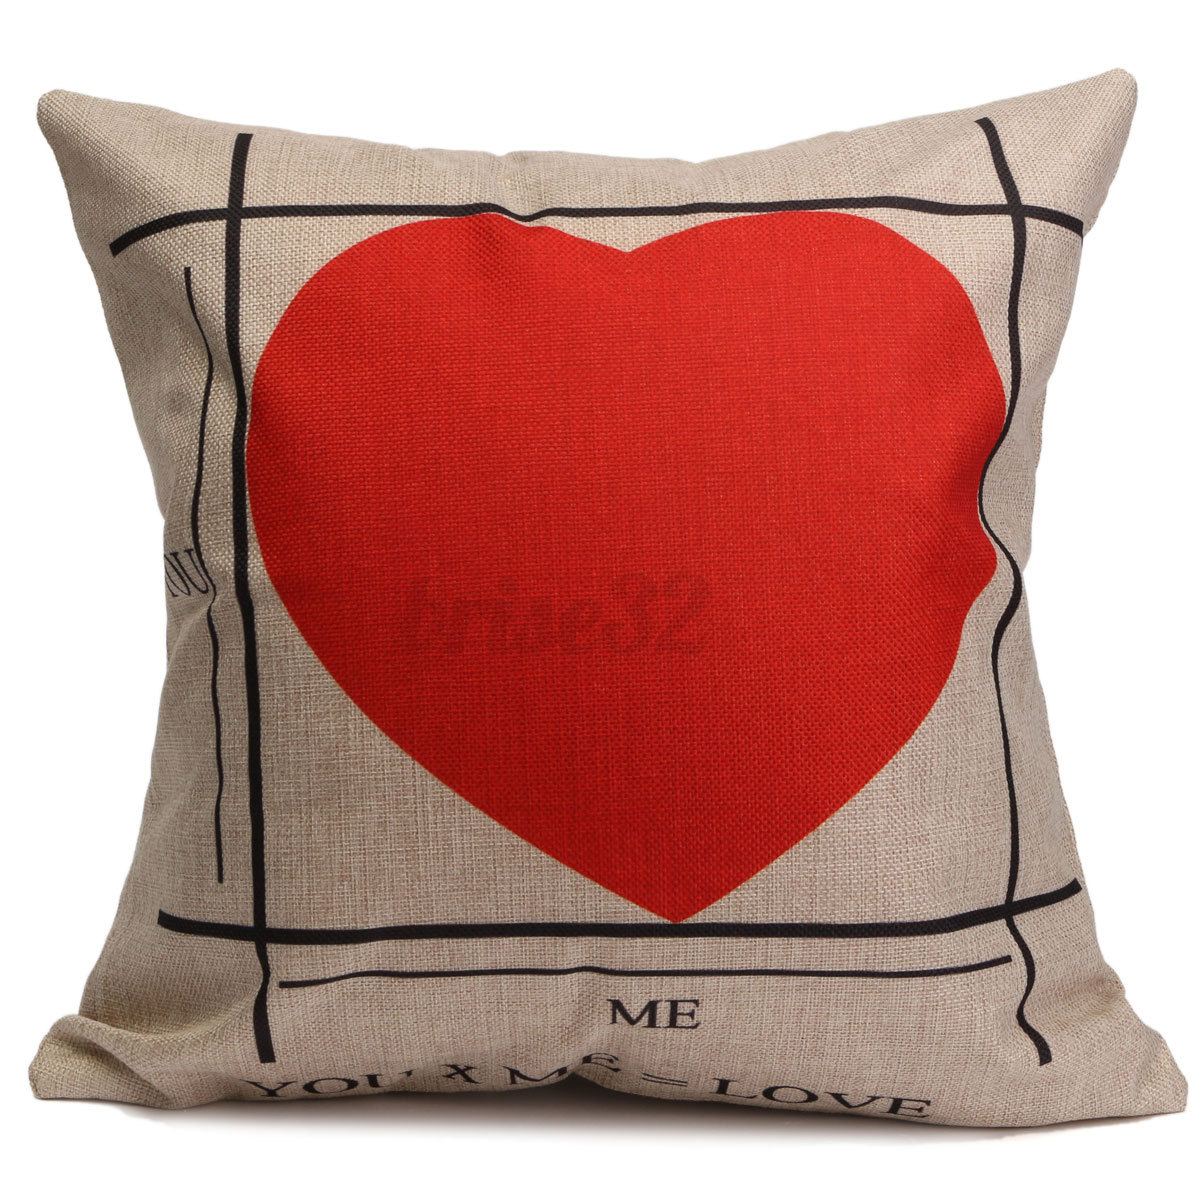 Square Throw Pillow Cover : Square Simple Retro Cotton Linen Throw Cushion Covers Pillow Case Home Decor eBay